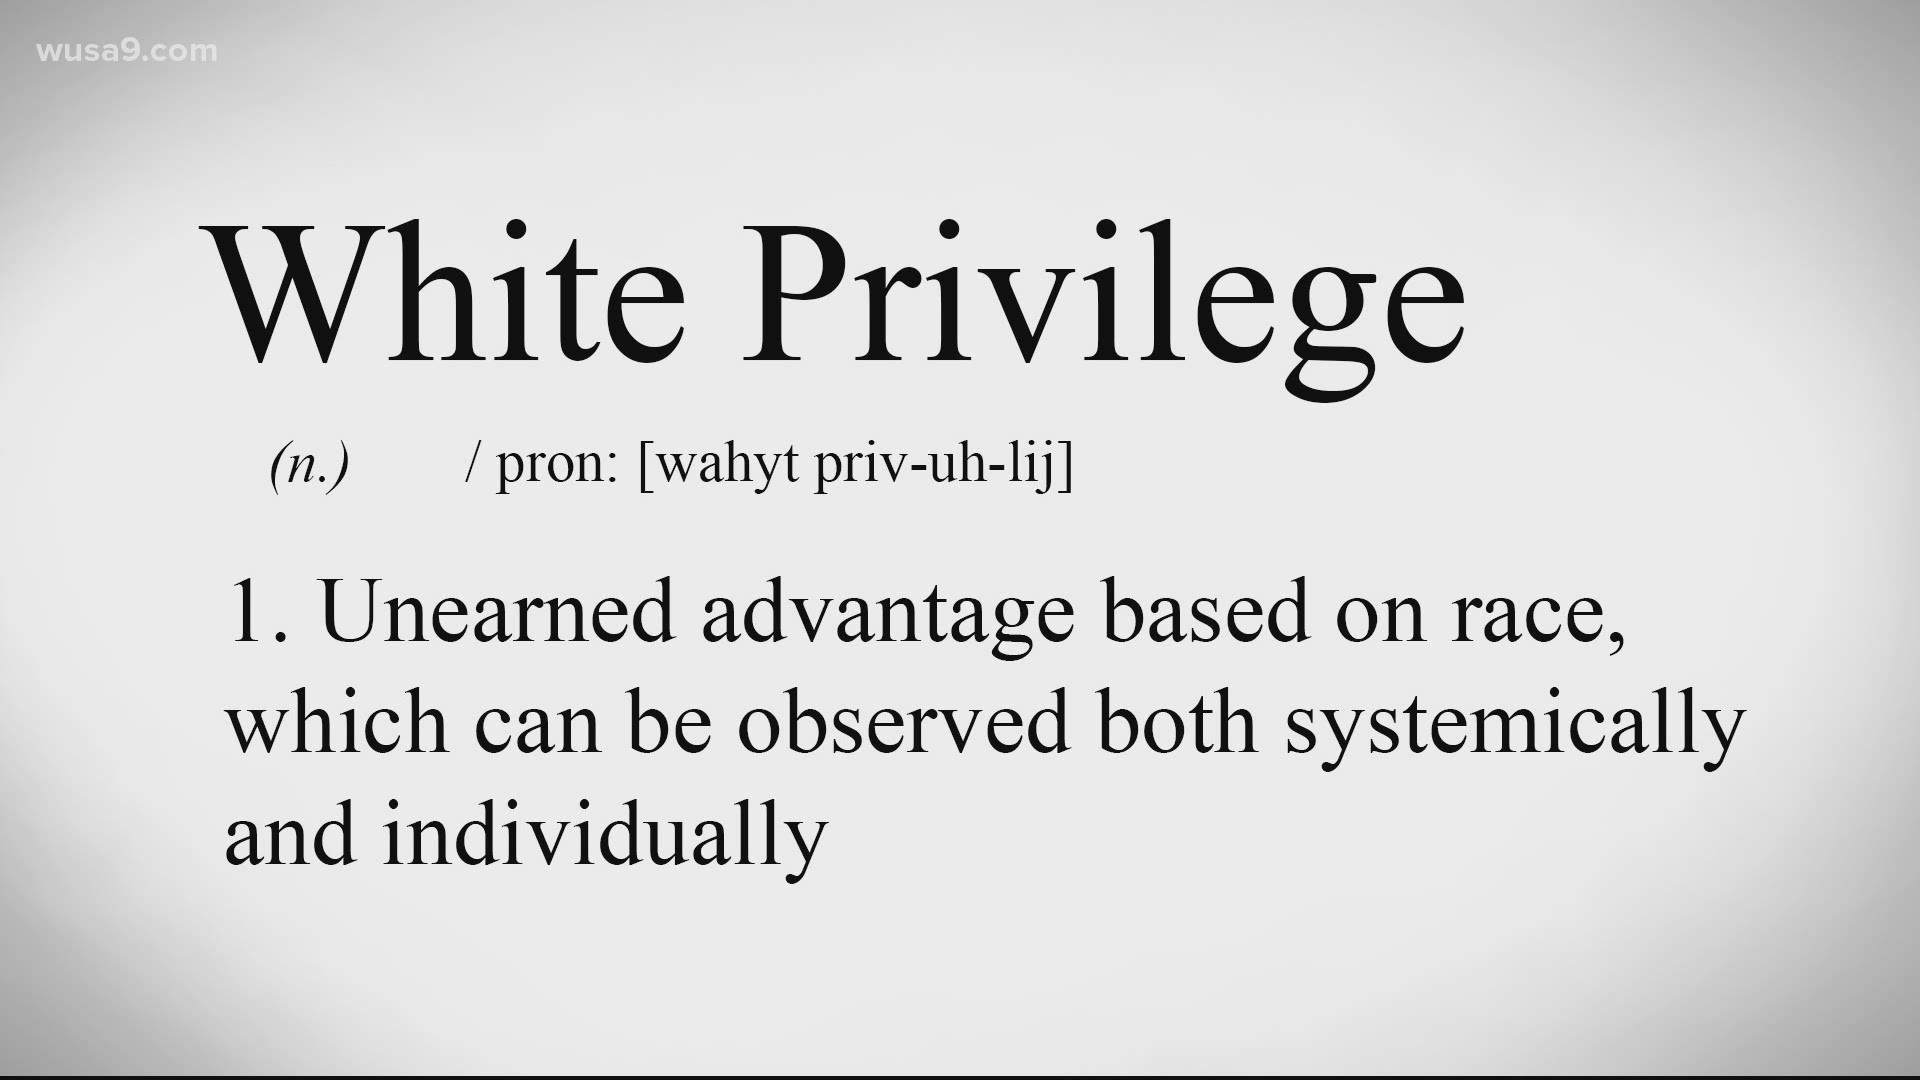 White privilege is real and this is what it looks like | wusa9.com